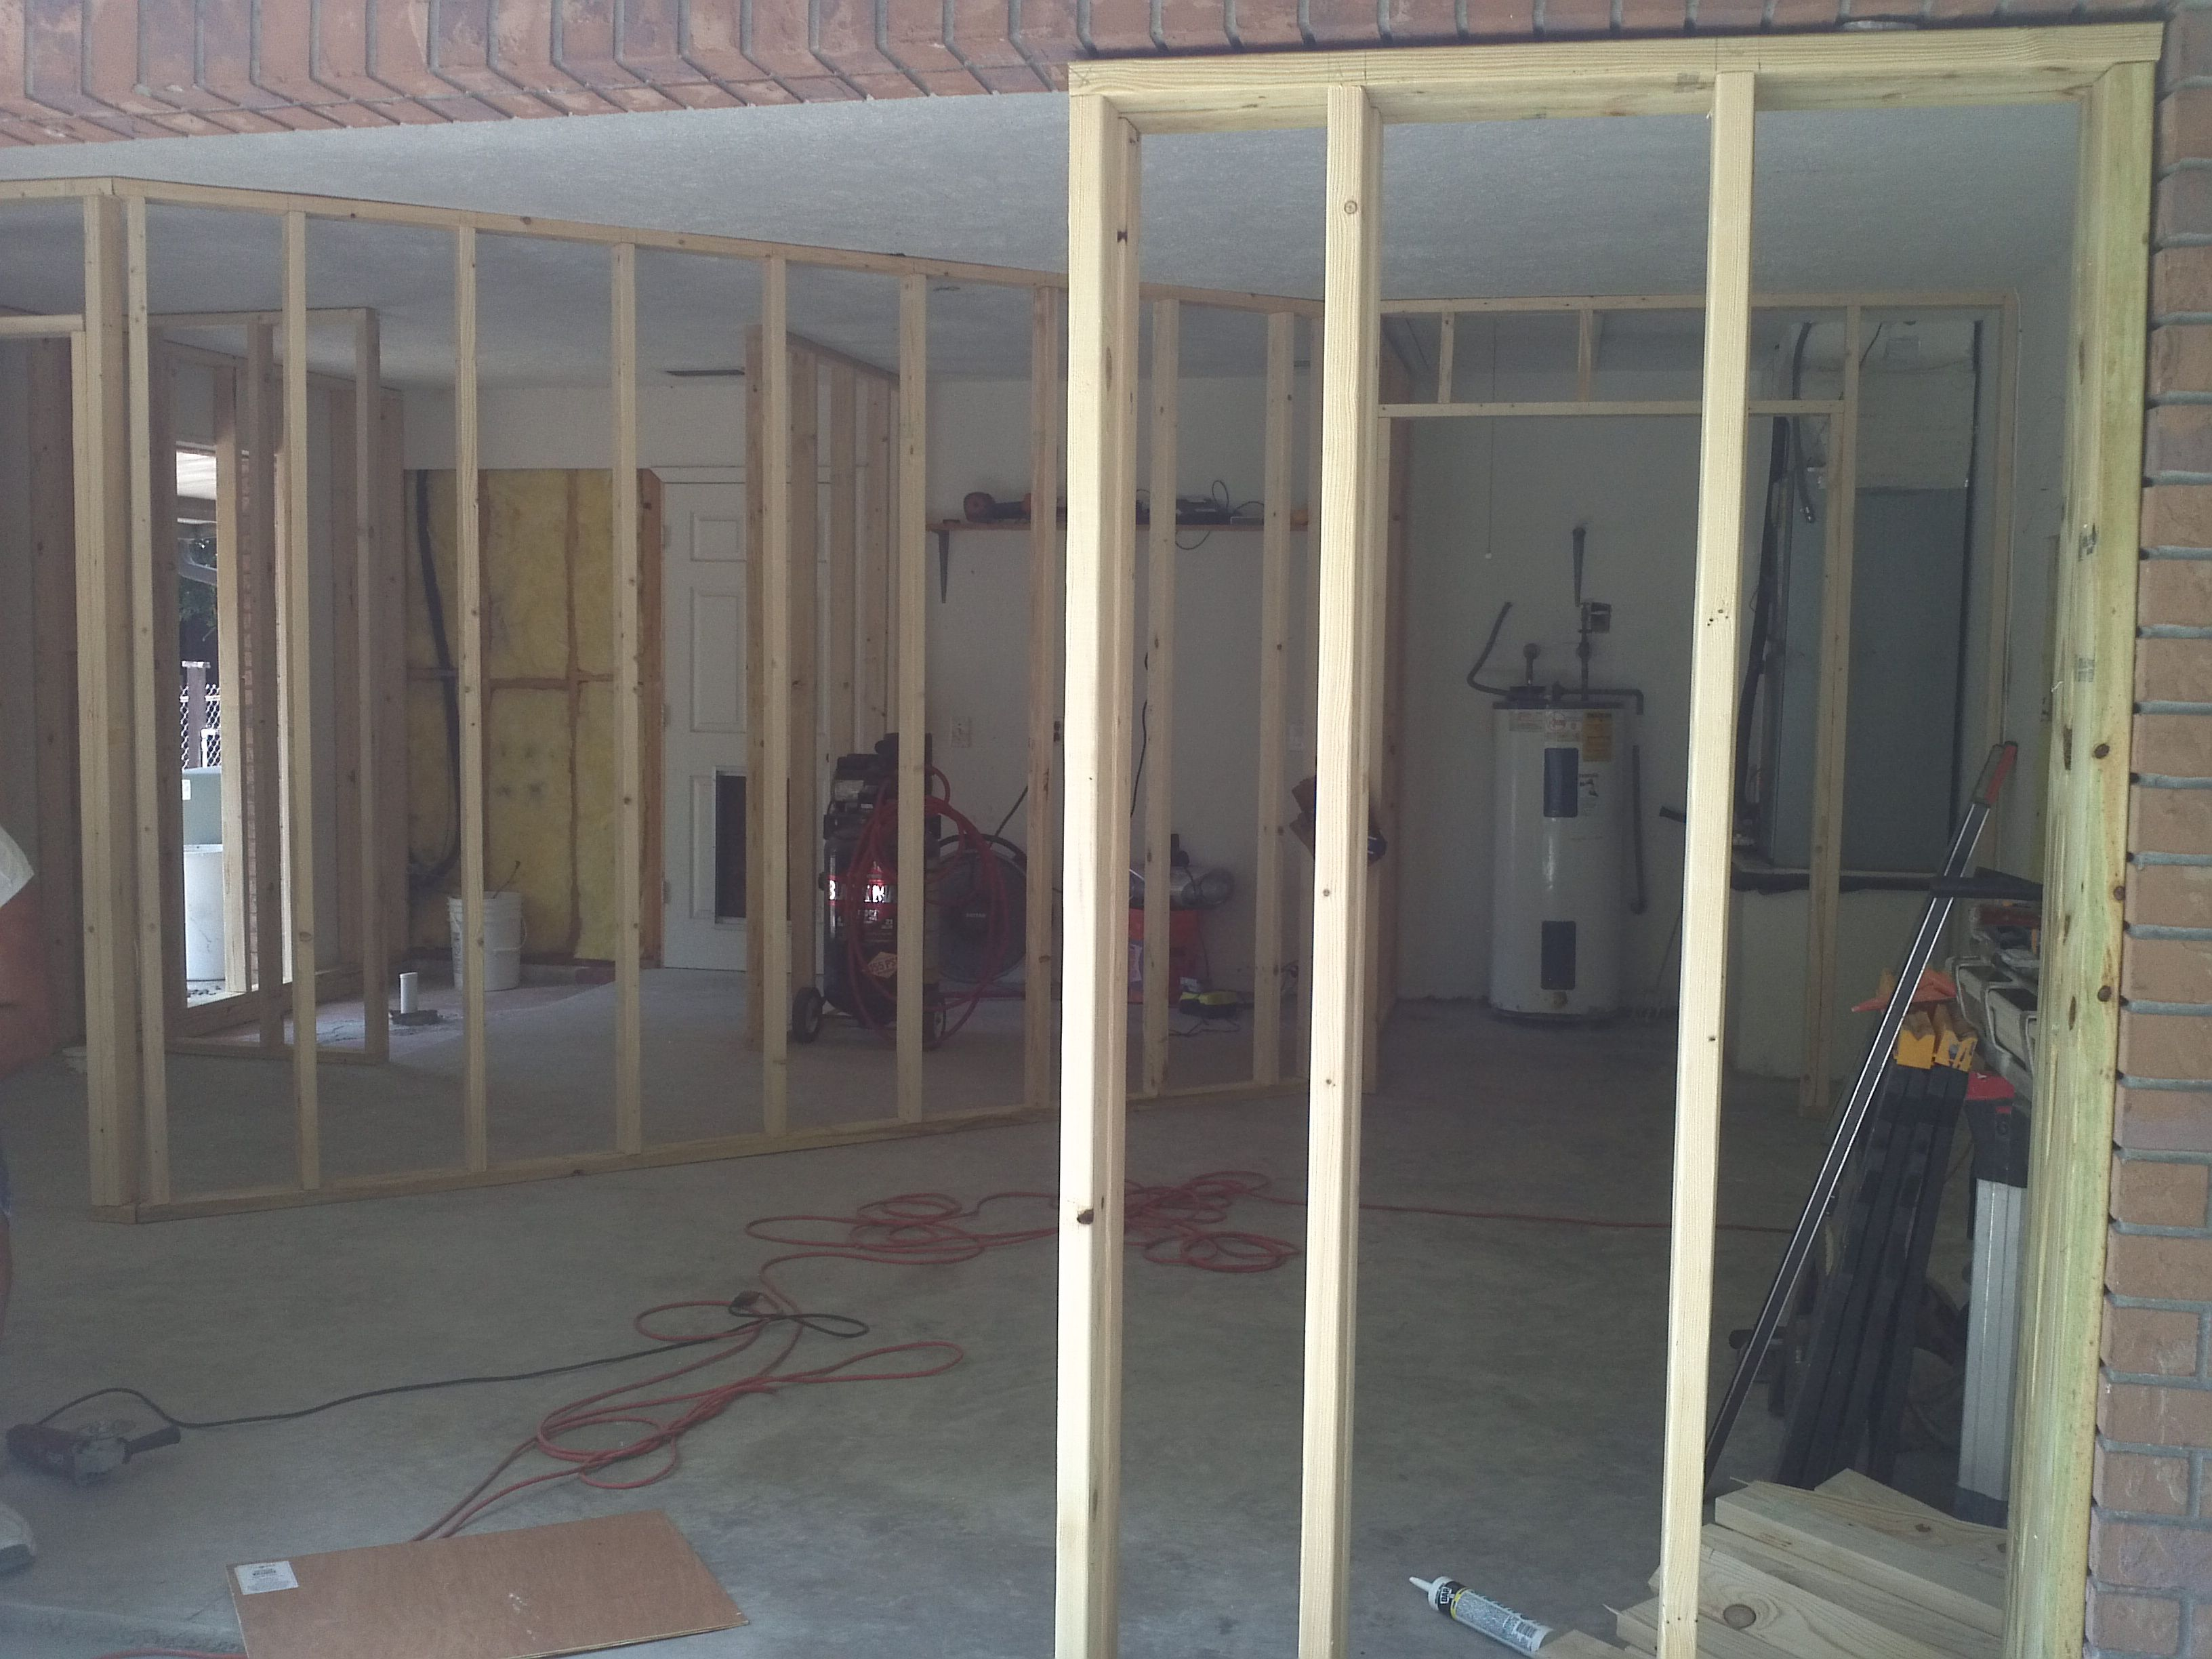 Garage conversion case studies completed by more living space